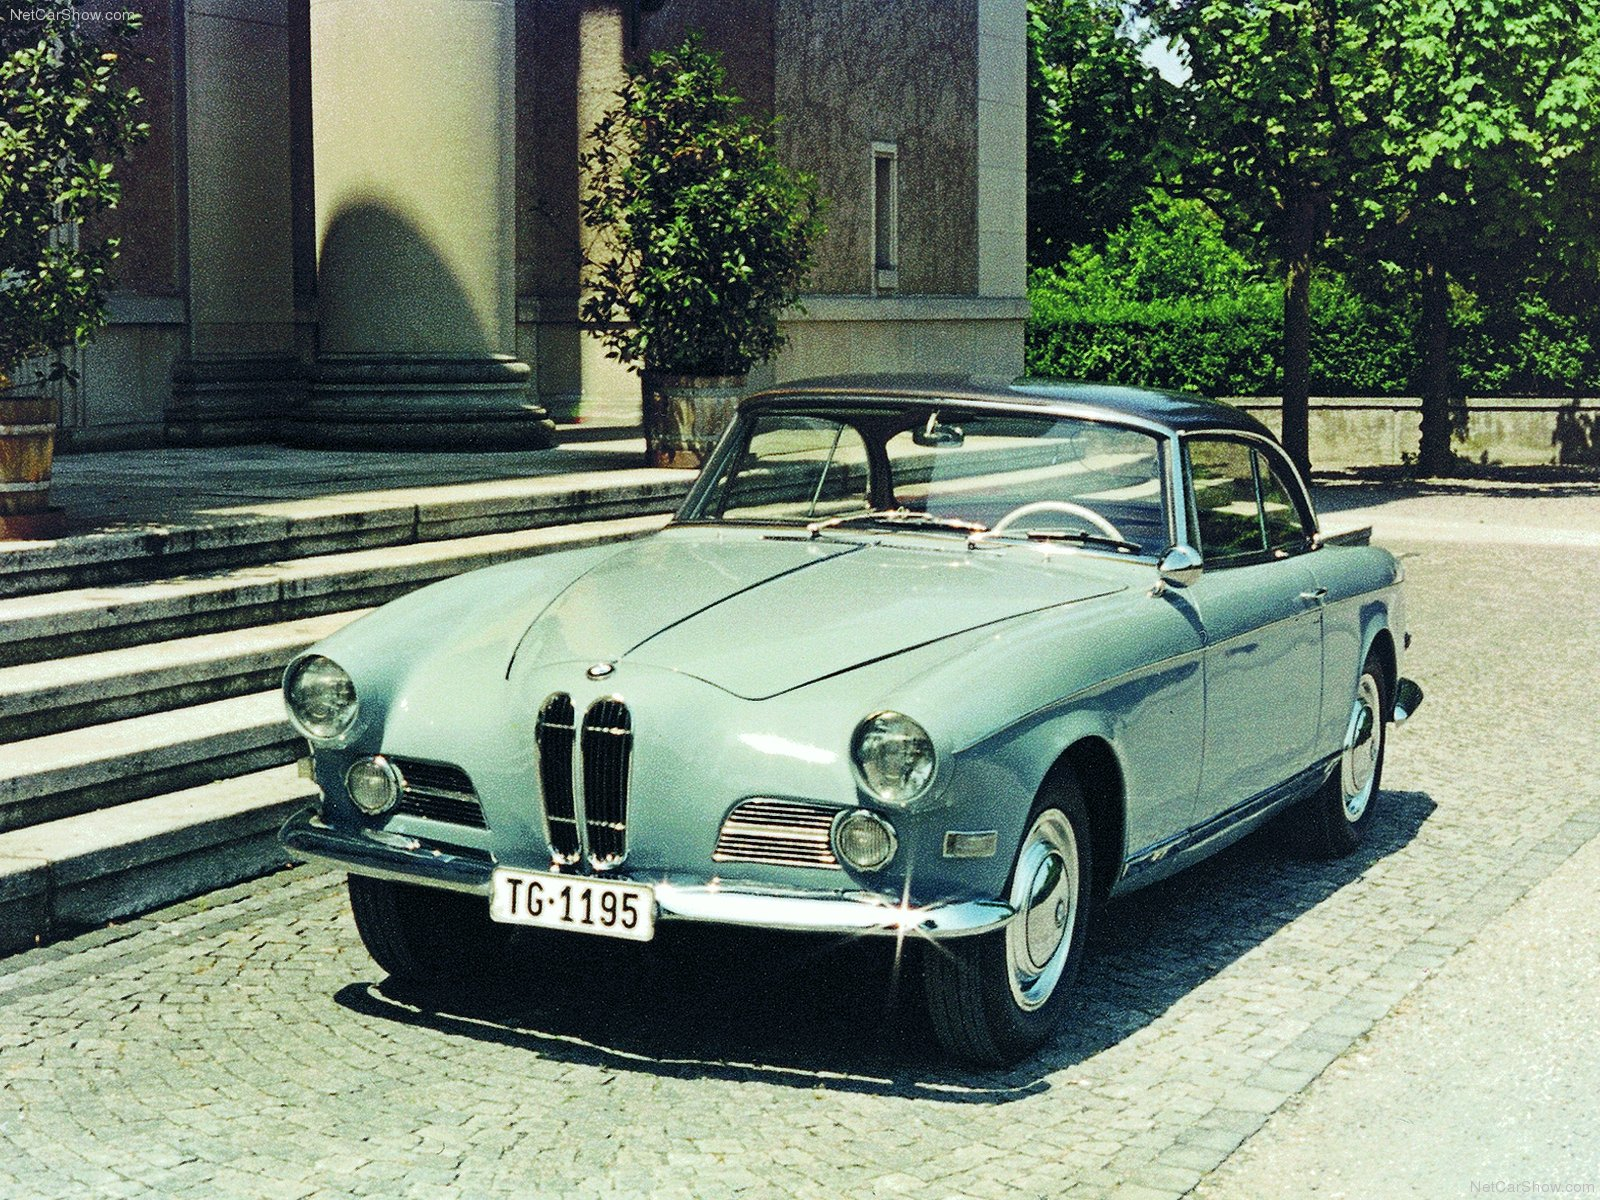 You can vote for this BMW 503 Coupe photo